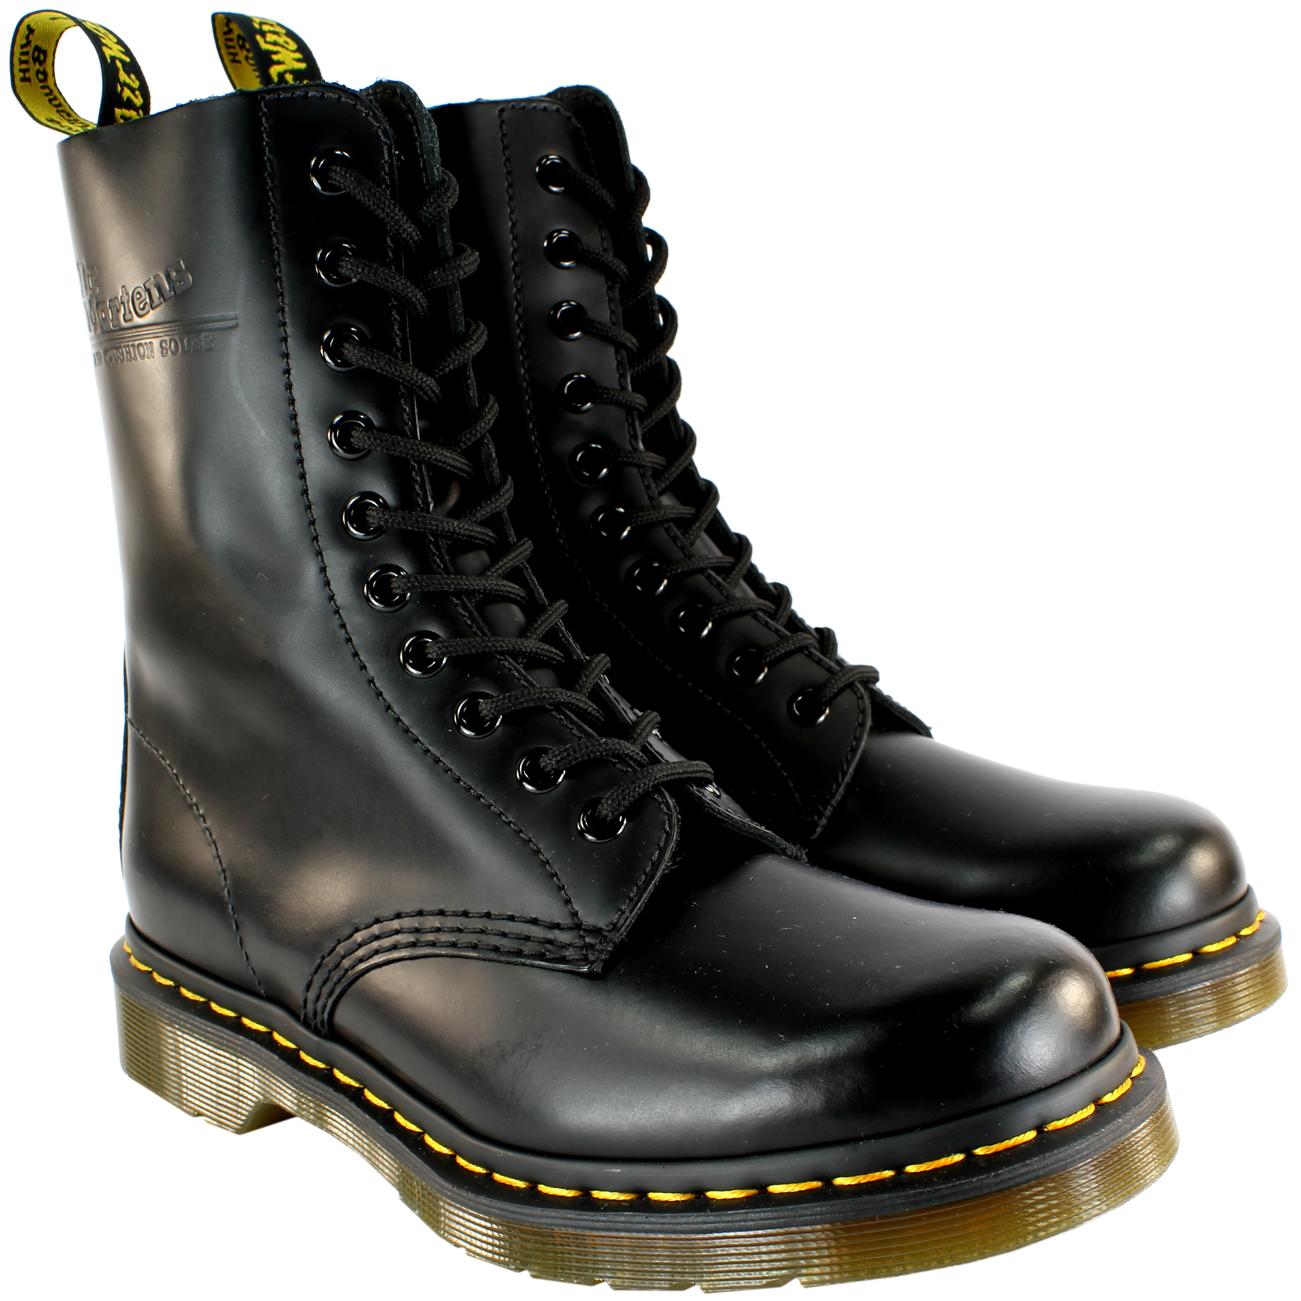 Dr Martens 1490 Military Style Ankle Boots